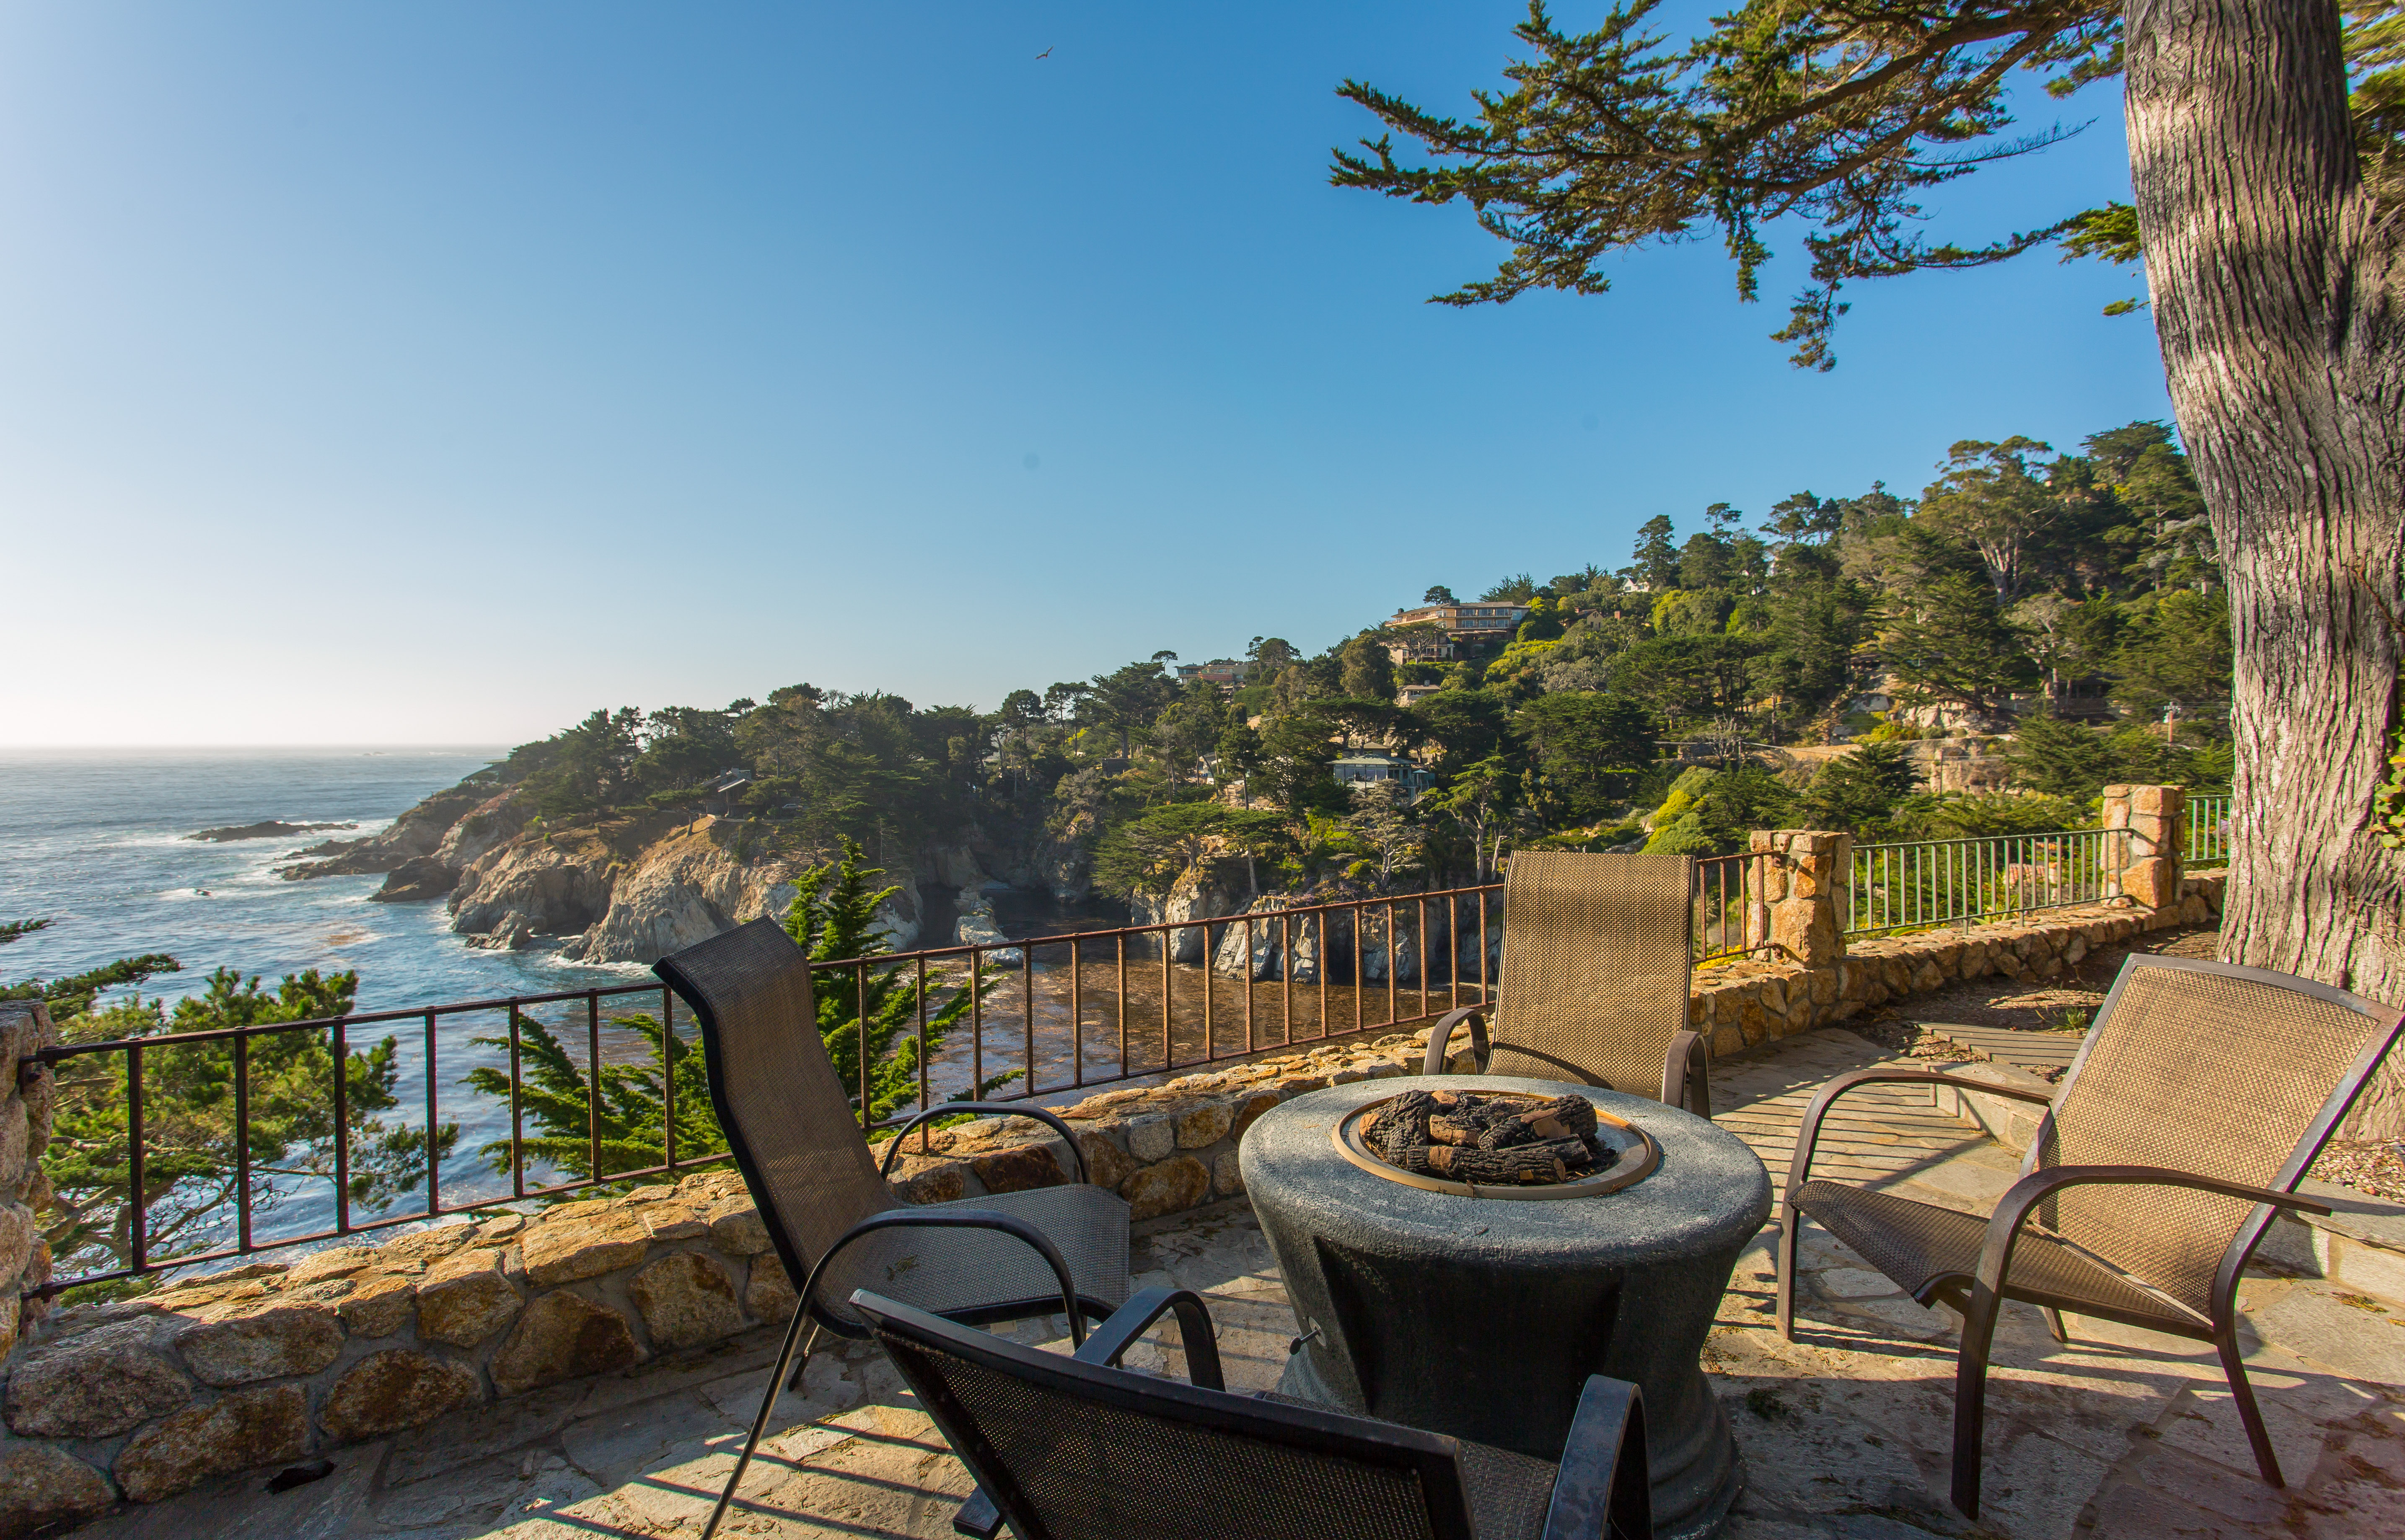 Carmel Highlands real estate for sale at Wildcat Cove